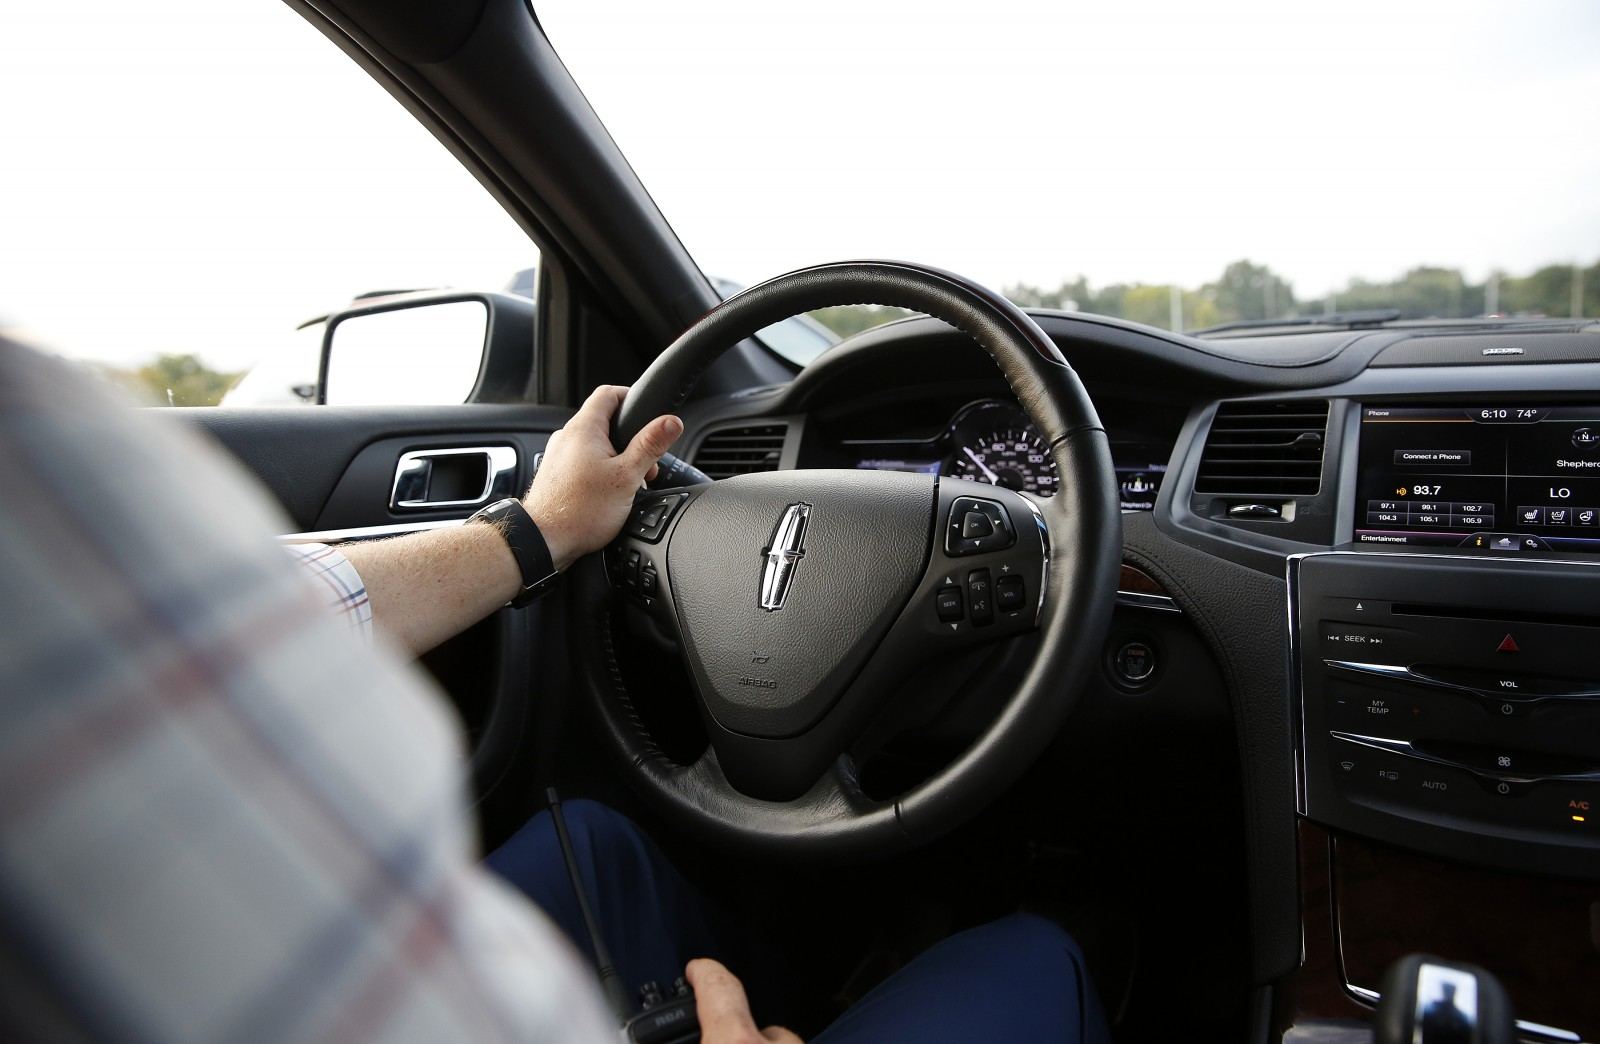 """A person drives the 2013 Lincoln MKZ at the """"Hello, Again"""" City Tour on Tuesday, Oct. 29, 2013 in Houston. (Photo by Aaron M. Sprecher/Invision for Lincoln/AP Images)"""